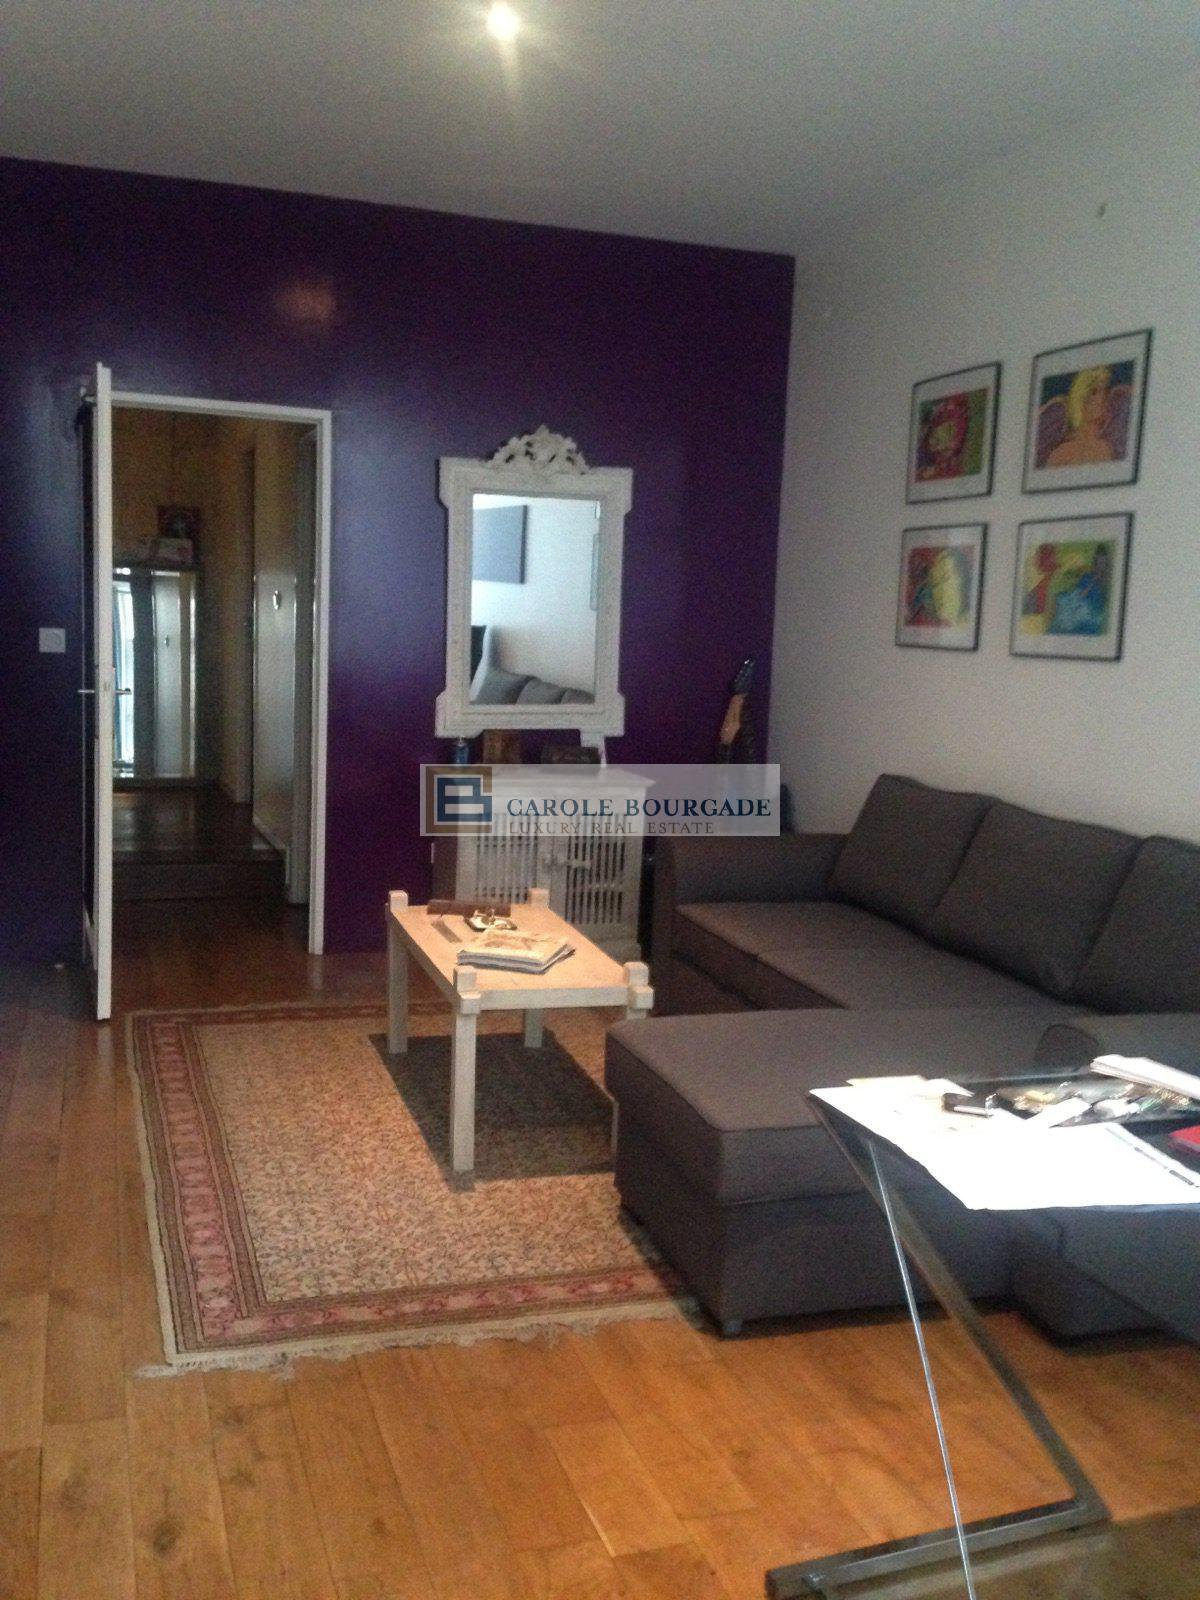 Location saisonni re appart location saisonni re appartement loft bordeaux - Location loft bordeaux ...